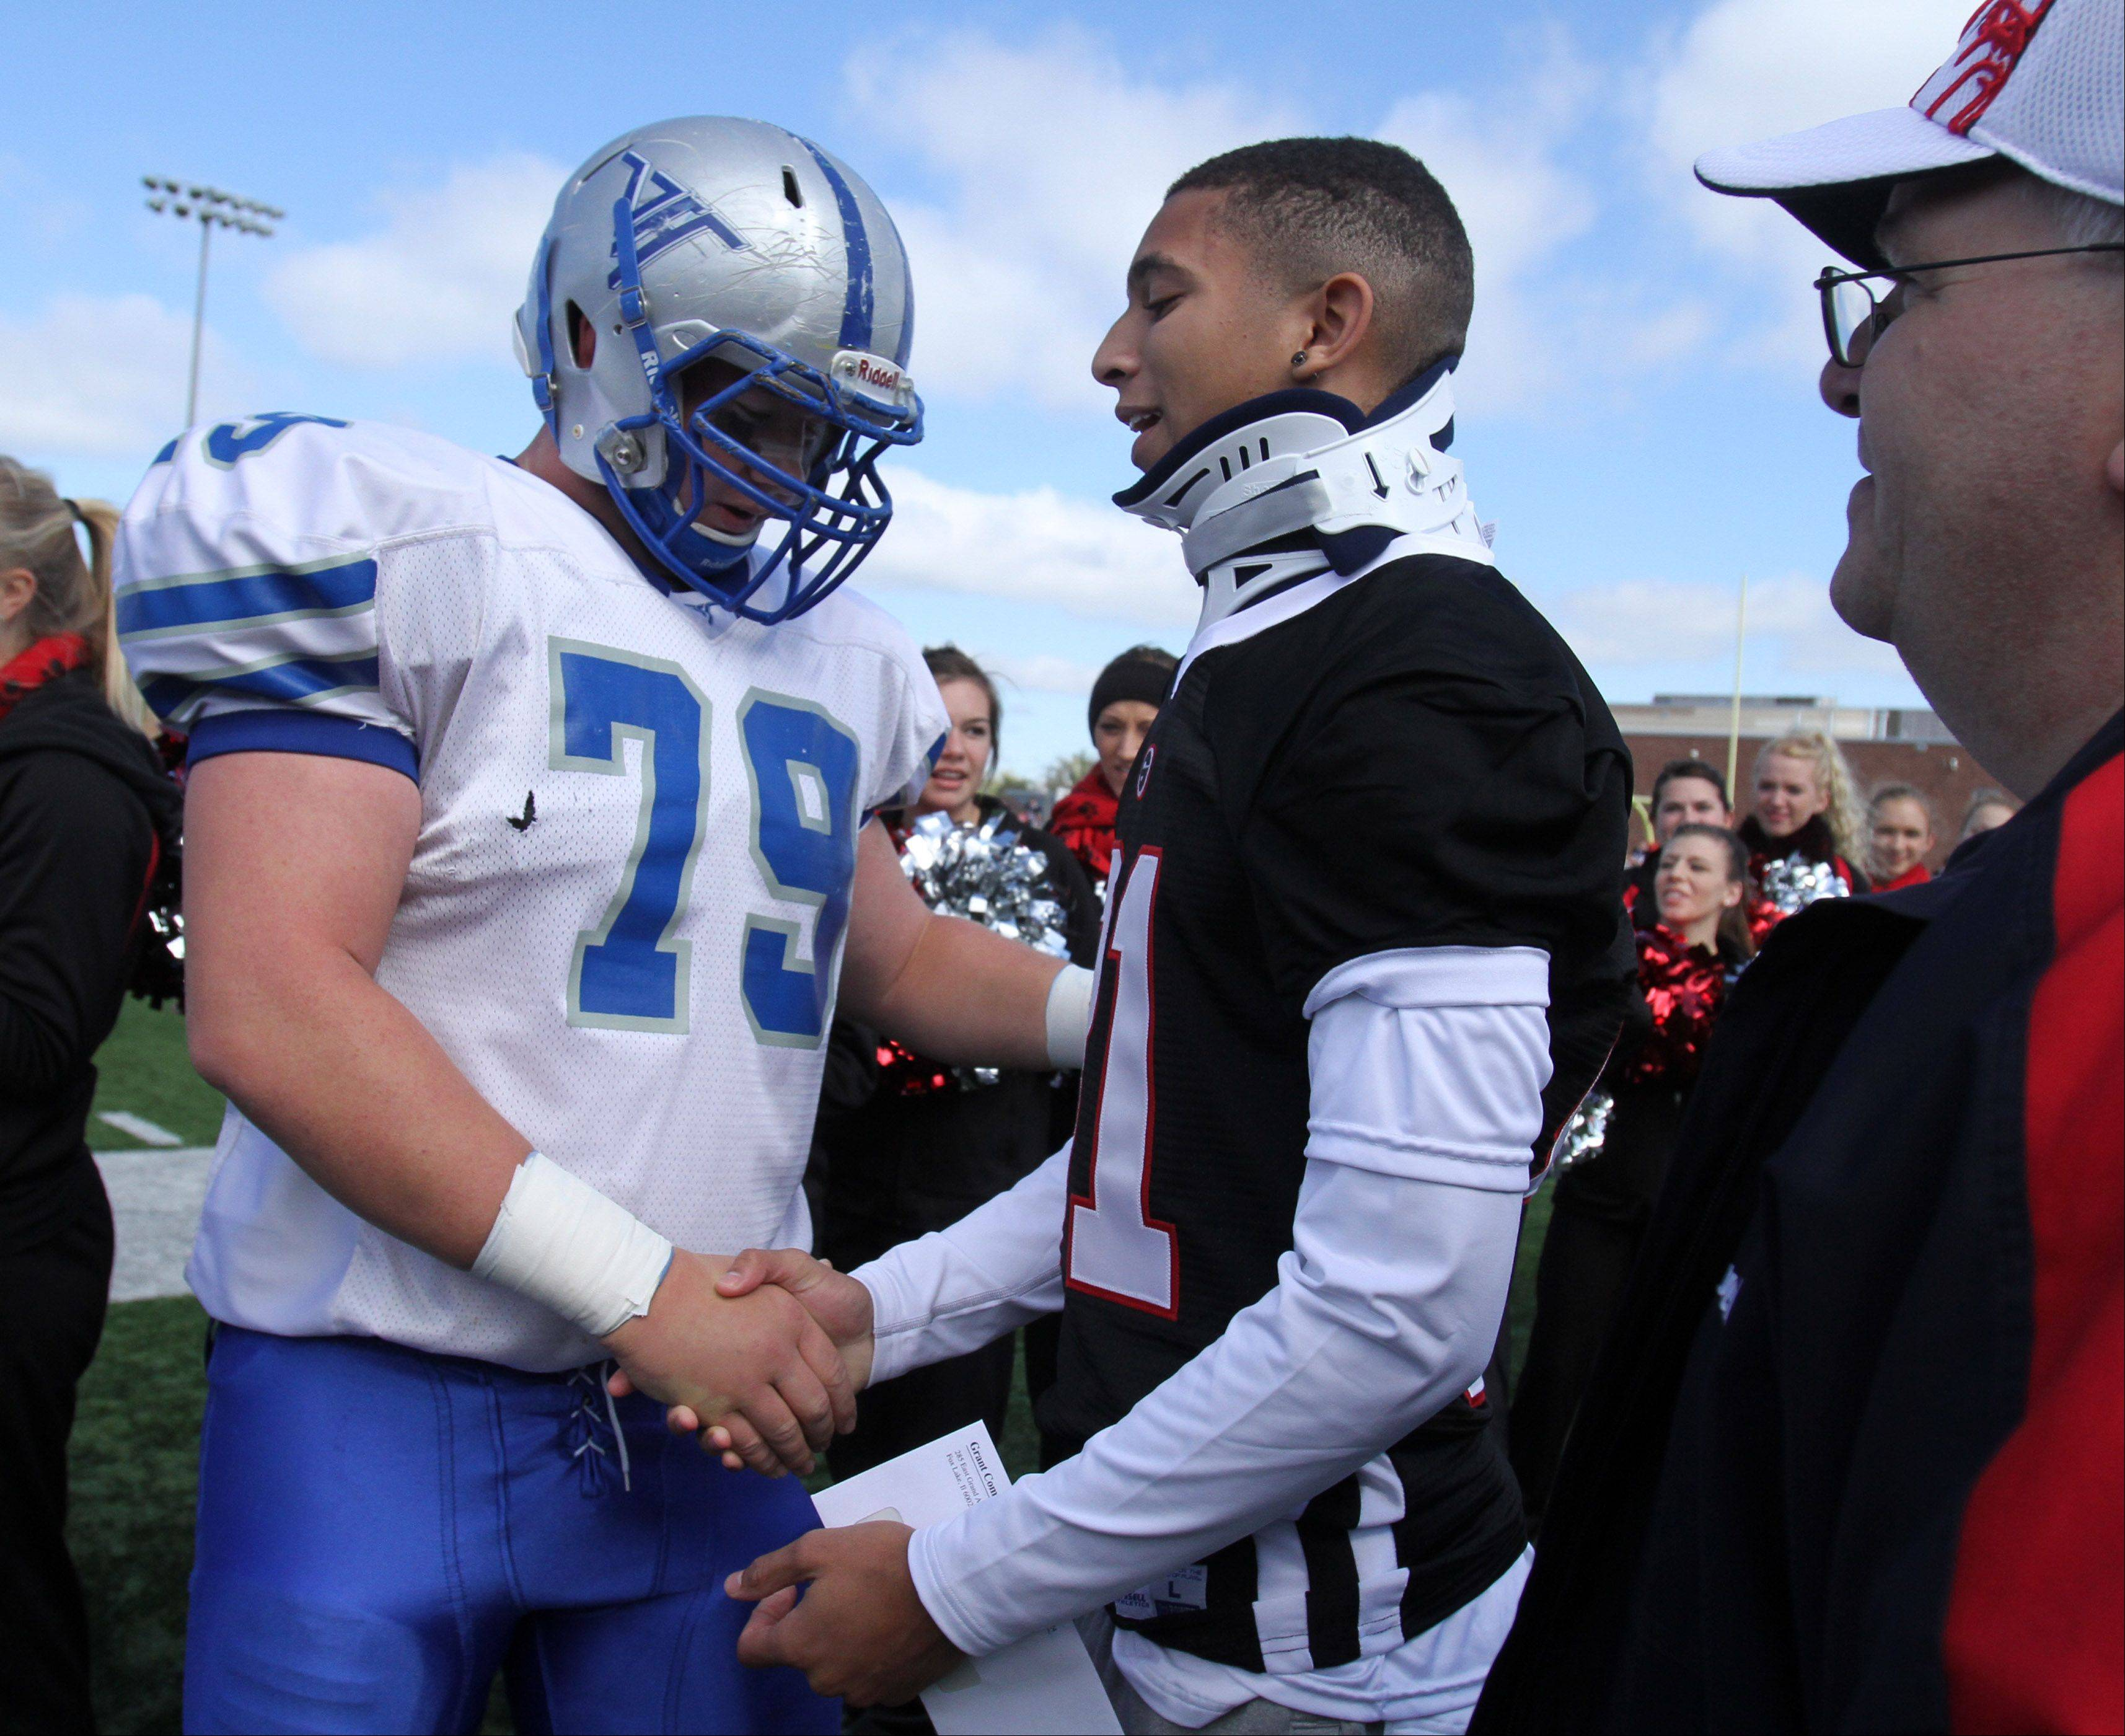 Grant cornerback Chris Gomoll, right, receives a gift and handshake from Vernon Hills offensive lineman and team captain Drake Randall, as Gomoll's dad, Ray, looks on before Grant's homecoming game last Saturday.